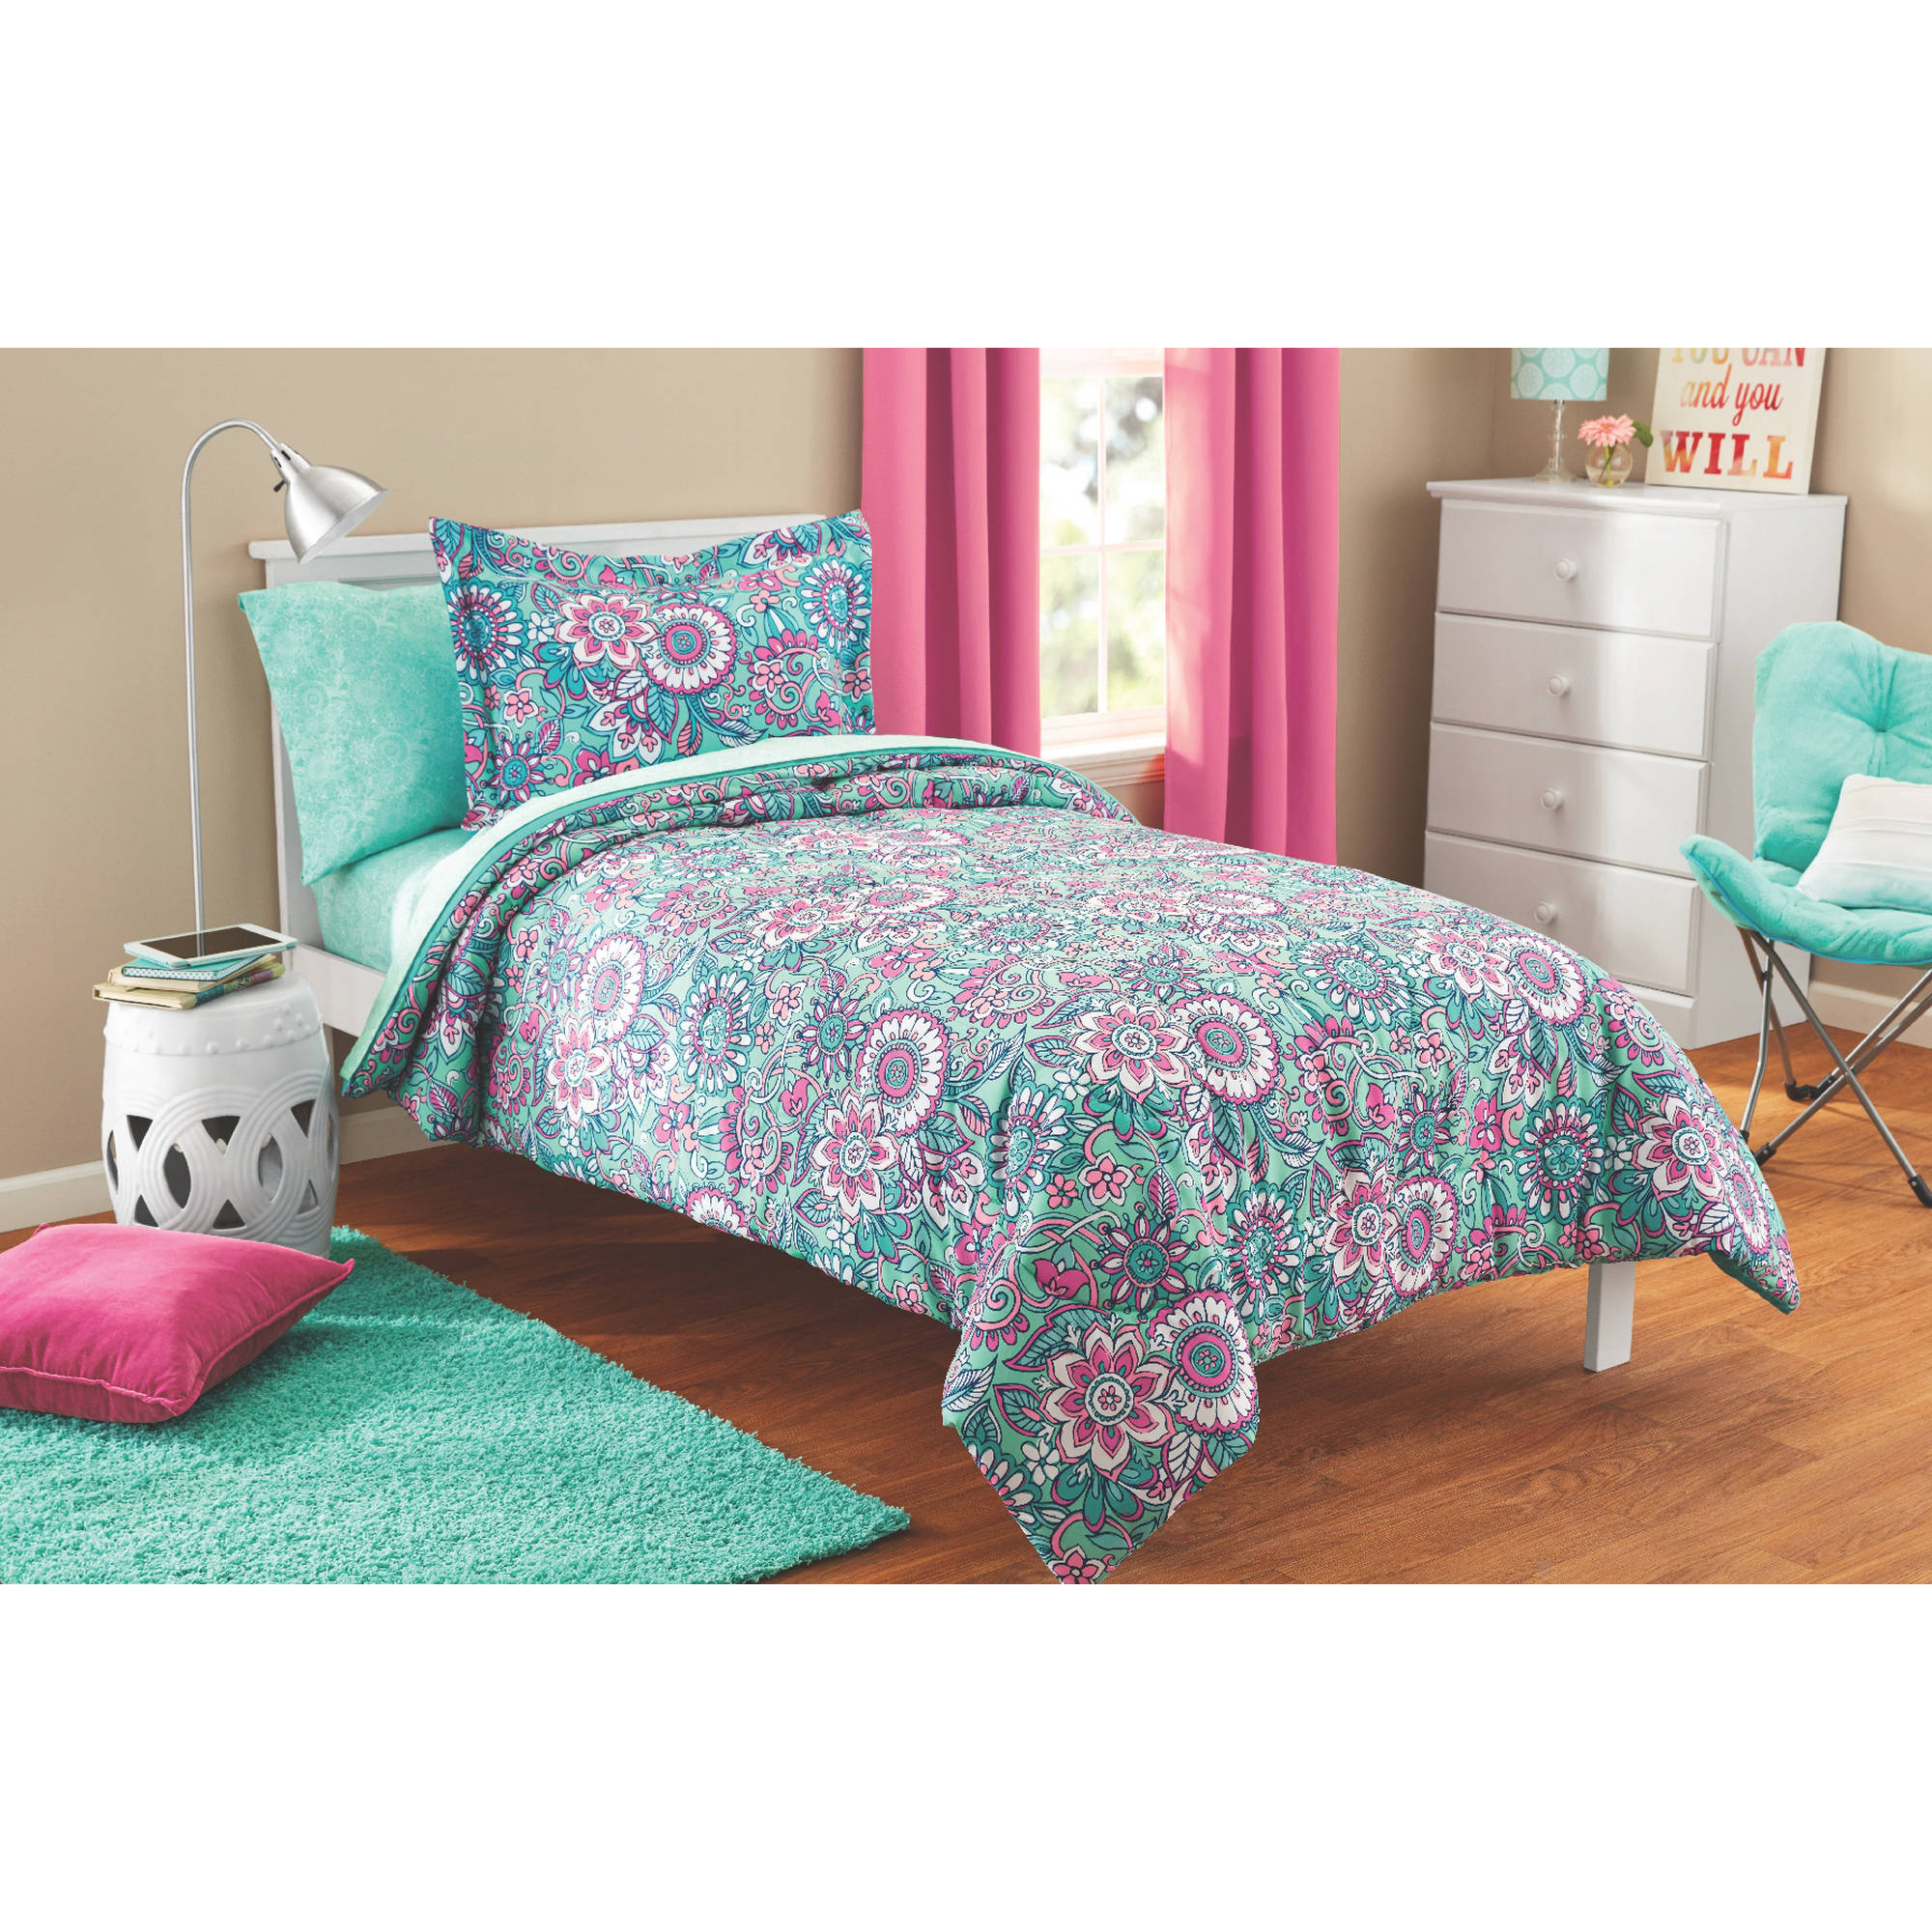 Mainstays Kids Floral Medallion Bed in a Bag Complete Bedding Set by Keeco